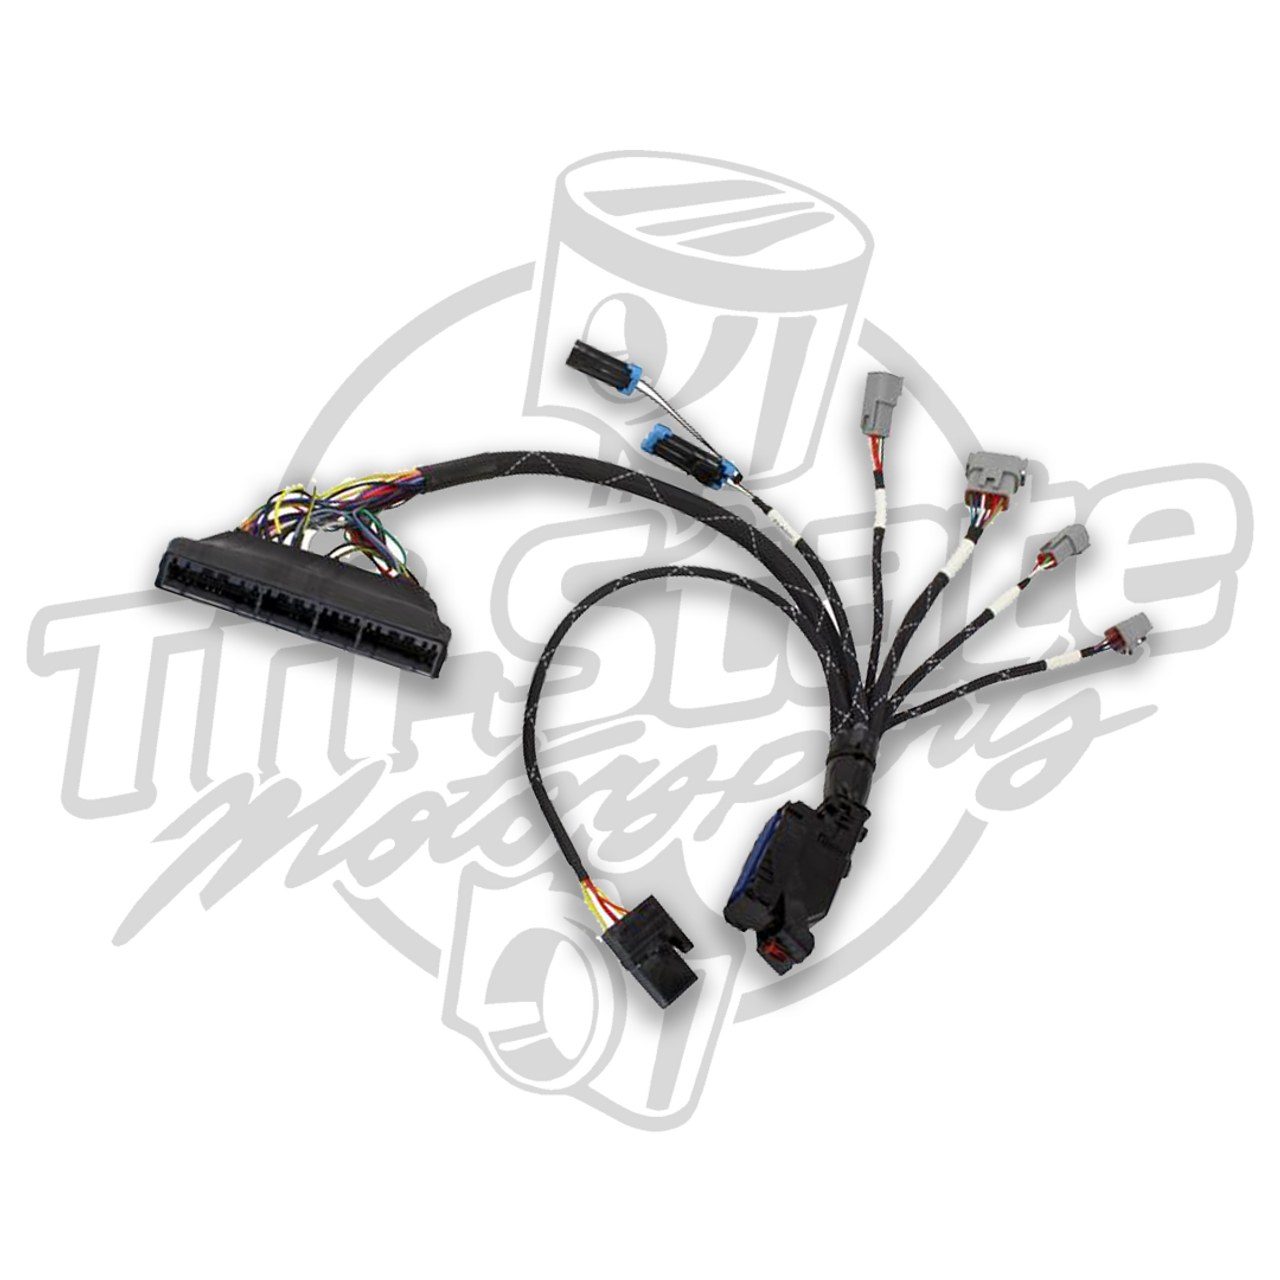 B Series Wiring Harness on amp bypass harness, nakamichi harness, radio harness, obd0 to obd1 conversion harness, alpine stereo harness, engine harness, electrical harness, pet harness, pony harness, battery harness, oxygen sensor extension harness, dog harness, safety harness, suspension harness, maxi-seal harness, cable harness, fall protection harness,